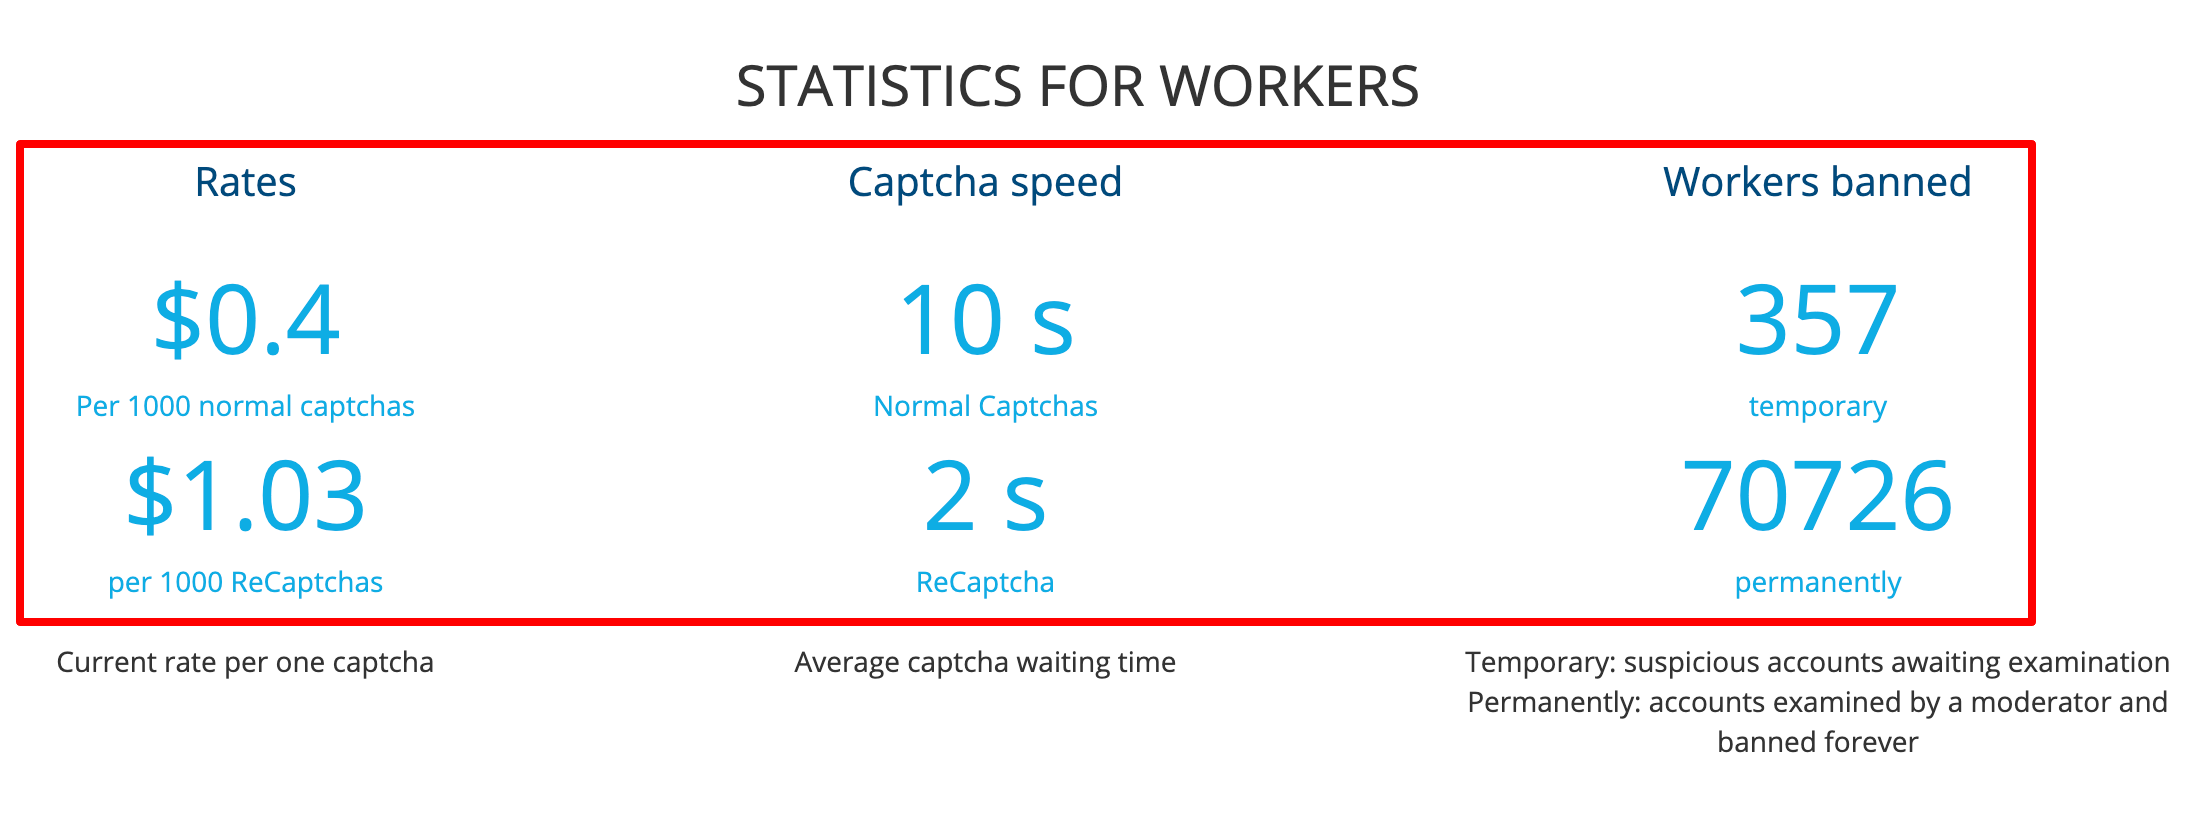 Stats For Workers